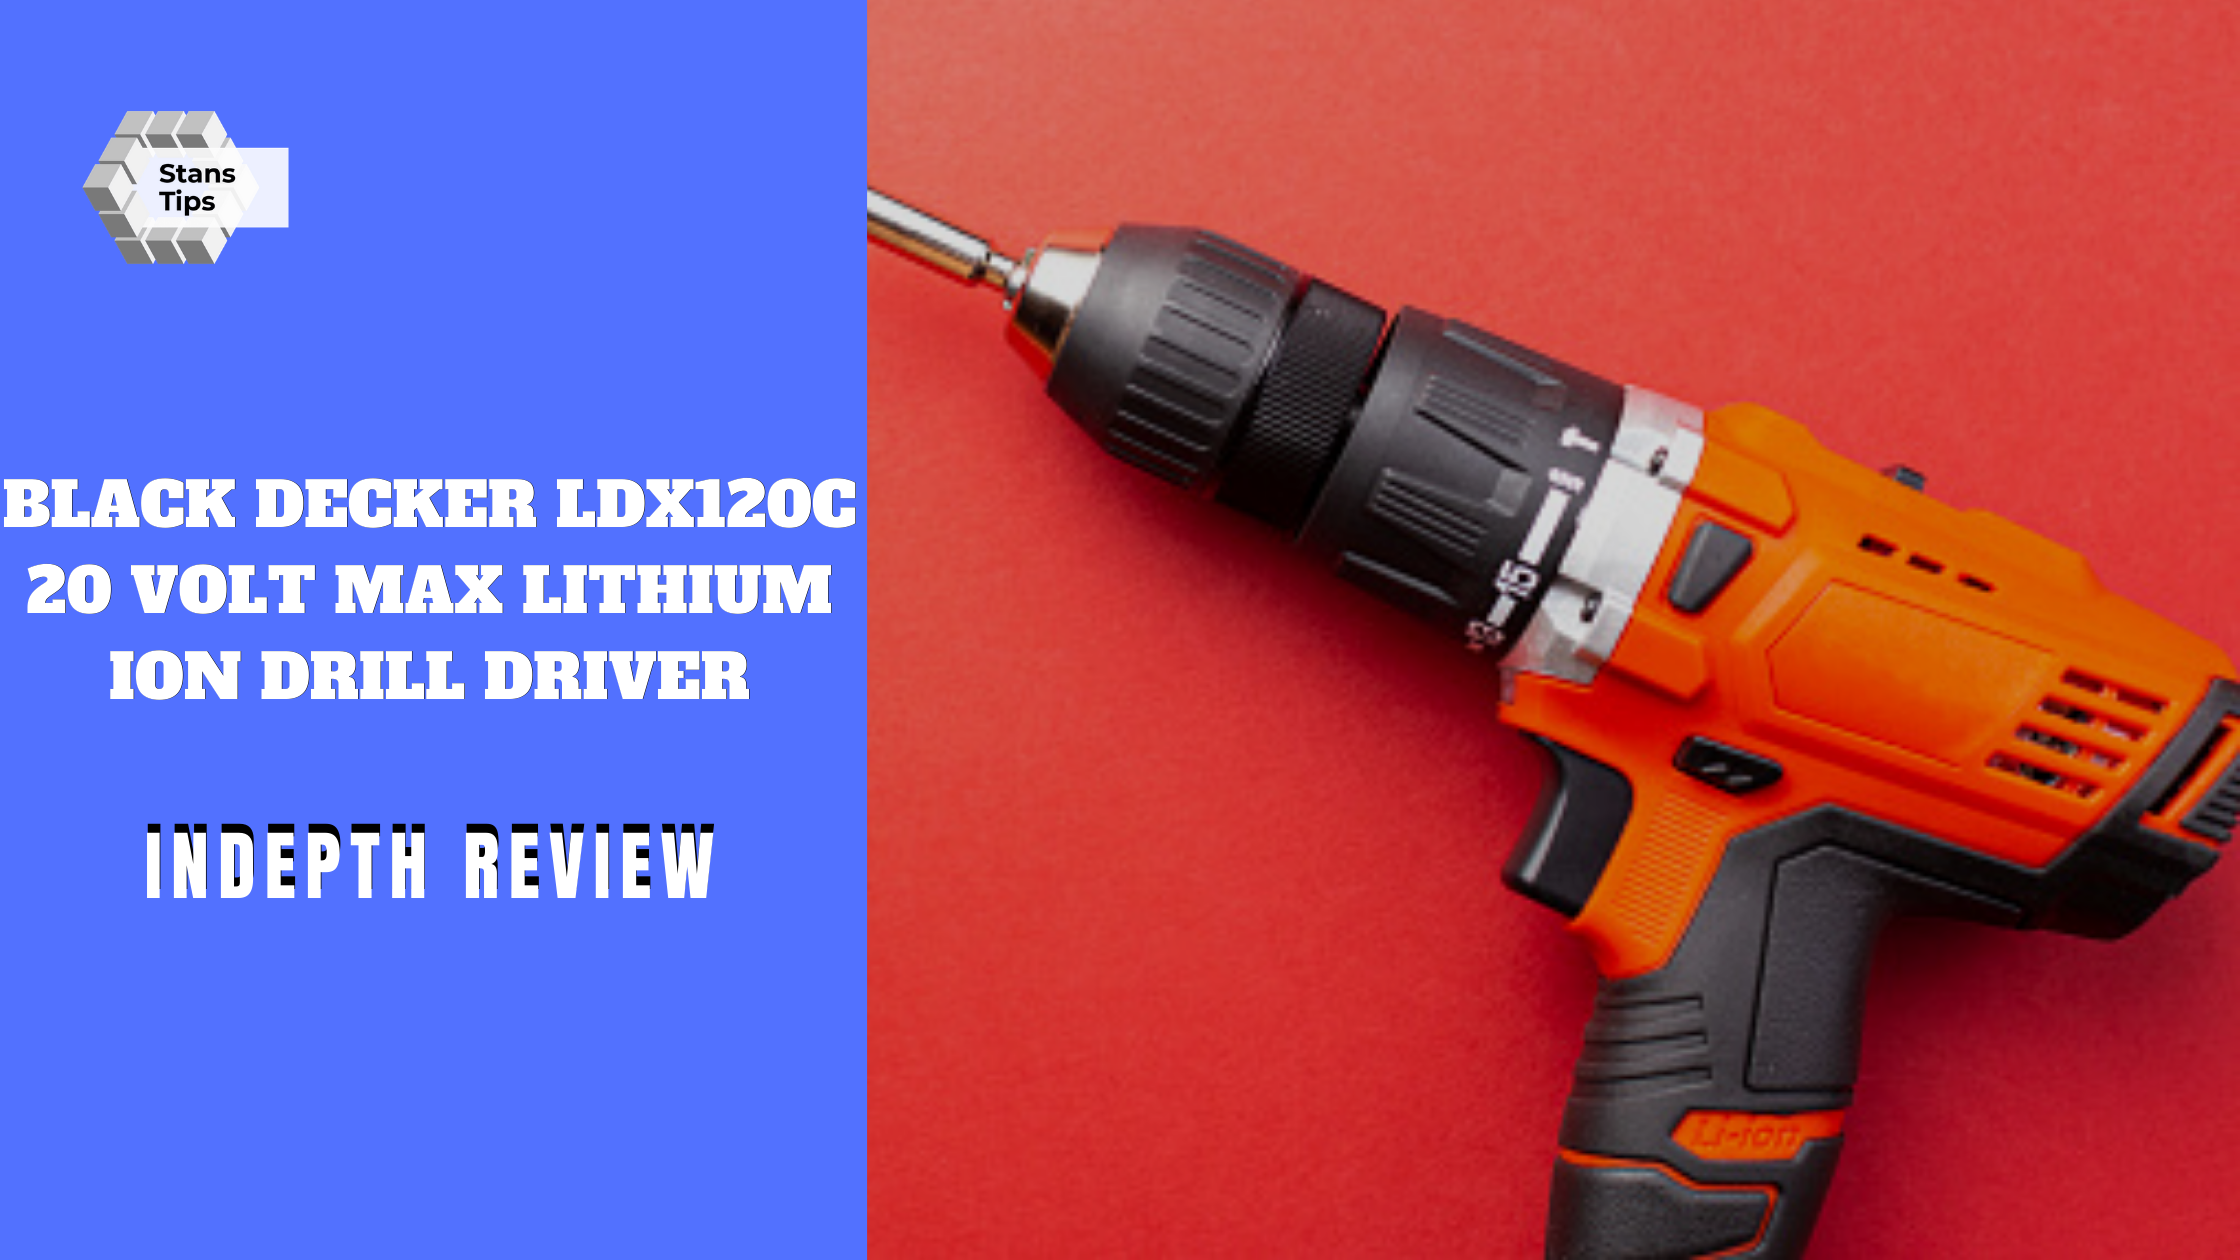 Black decker ldx120c 20 volt max lithium ion drill driver review